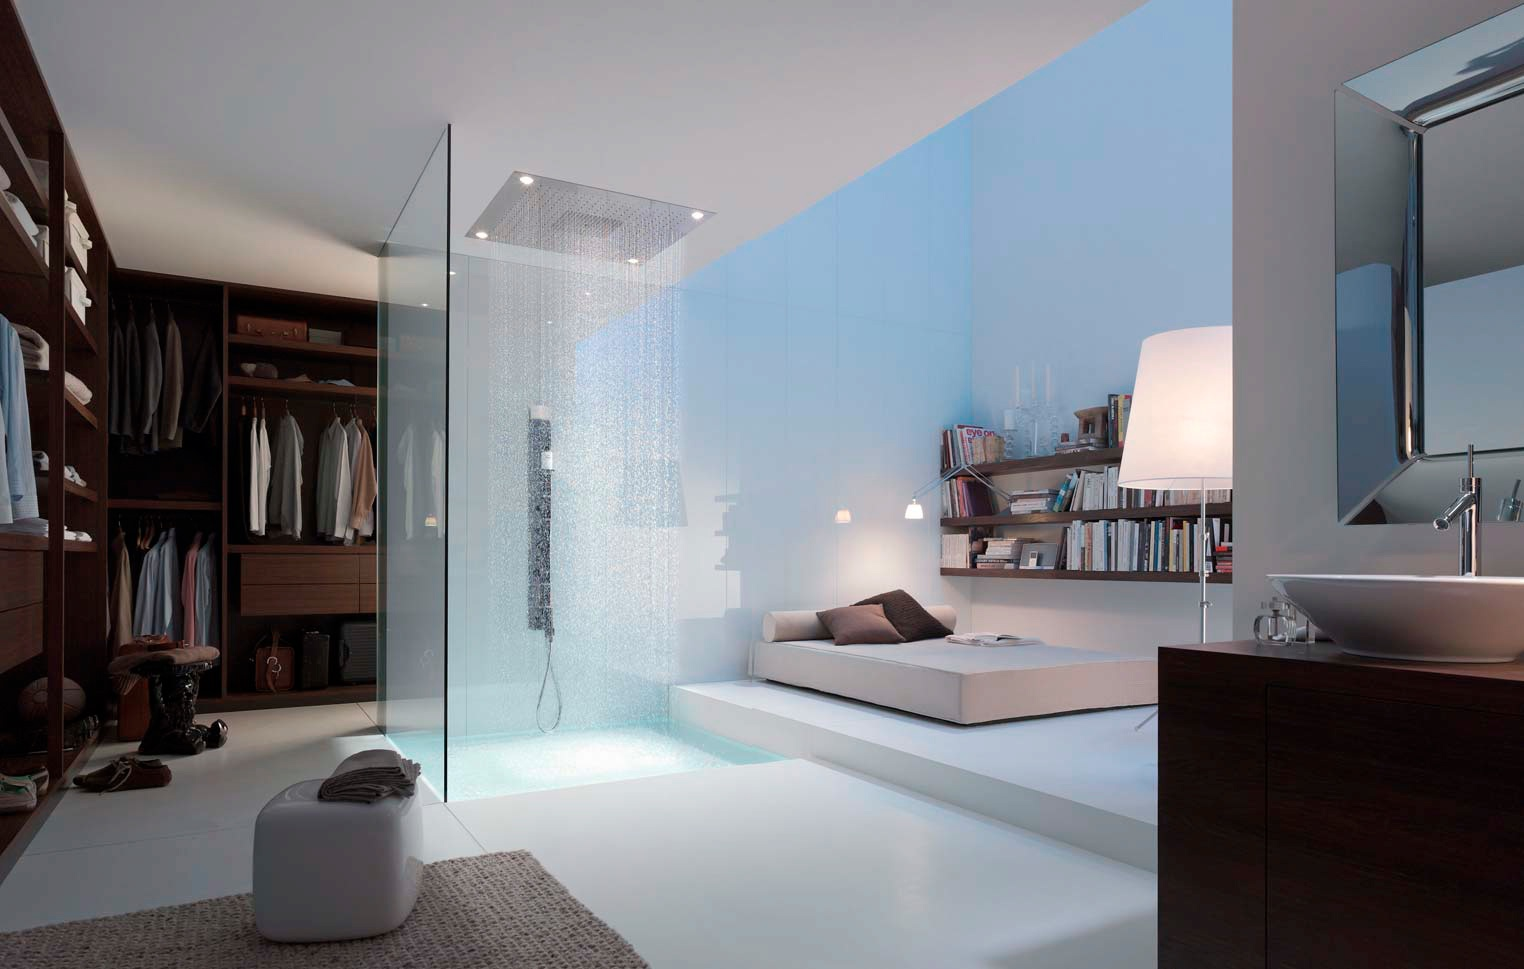 shower room design - Shower Room Design Ideas